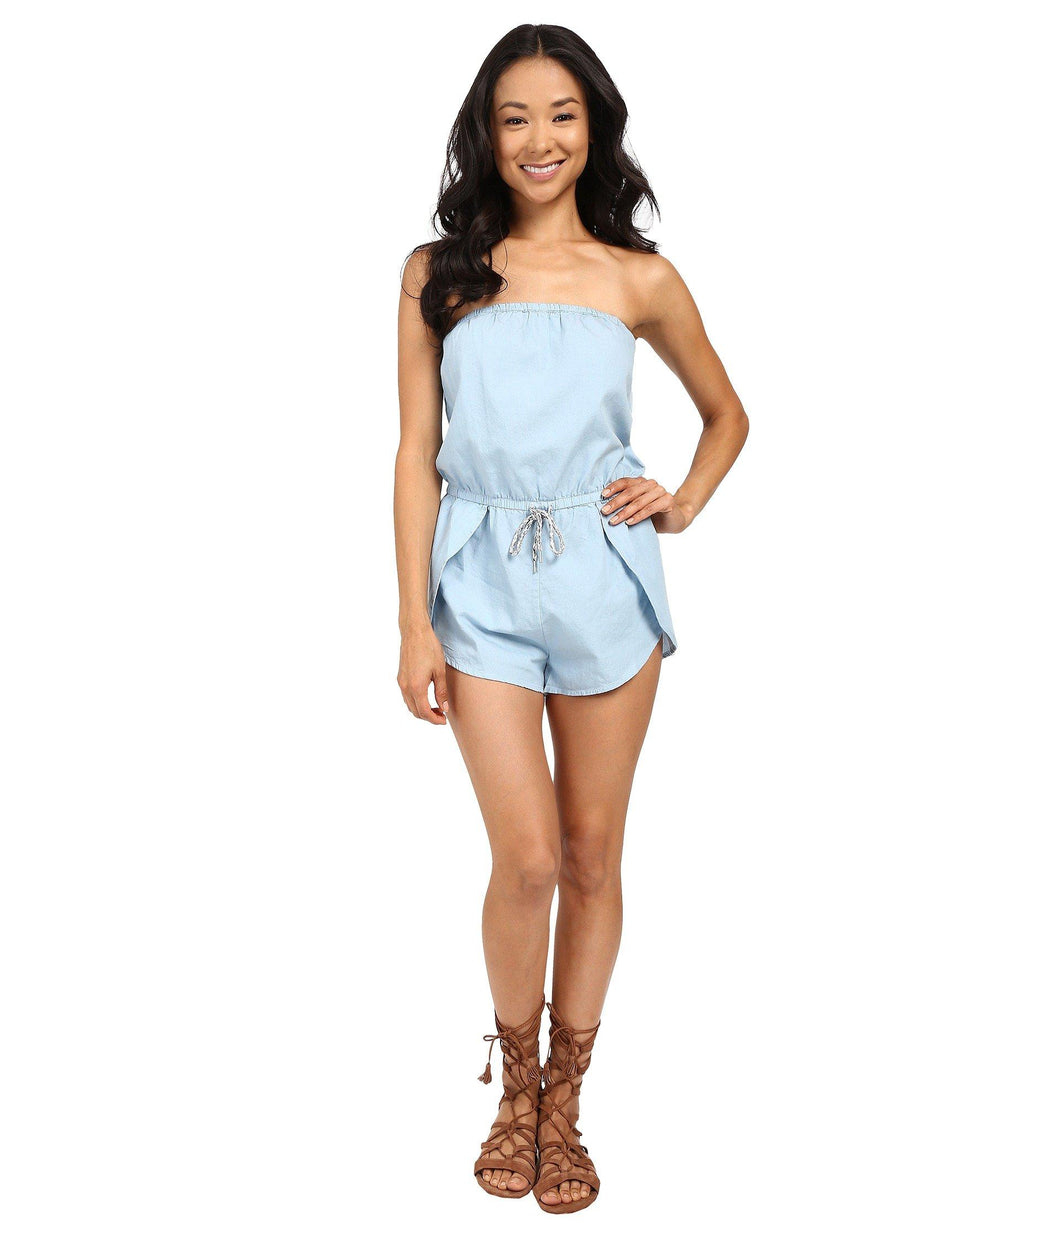 Vans Women's Mars Denim Romper, Bleach, Size Small